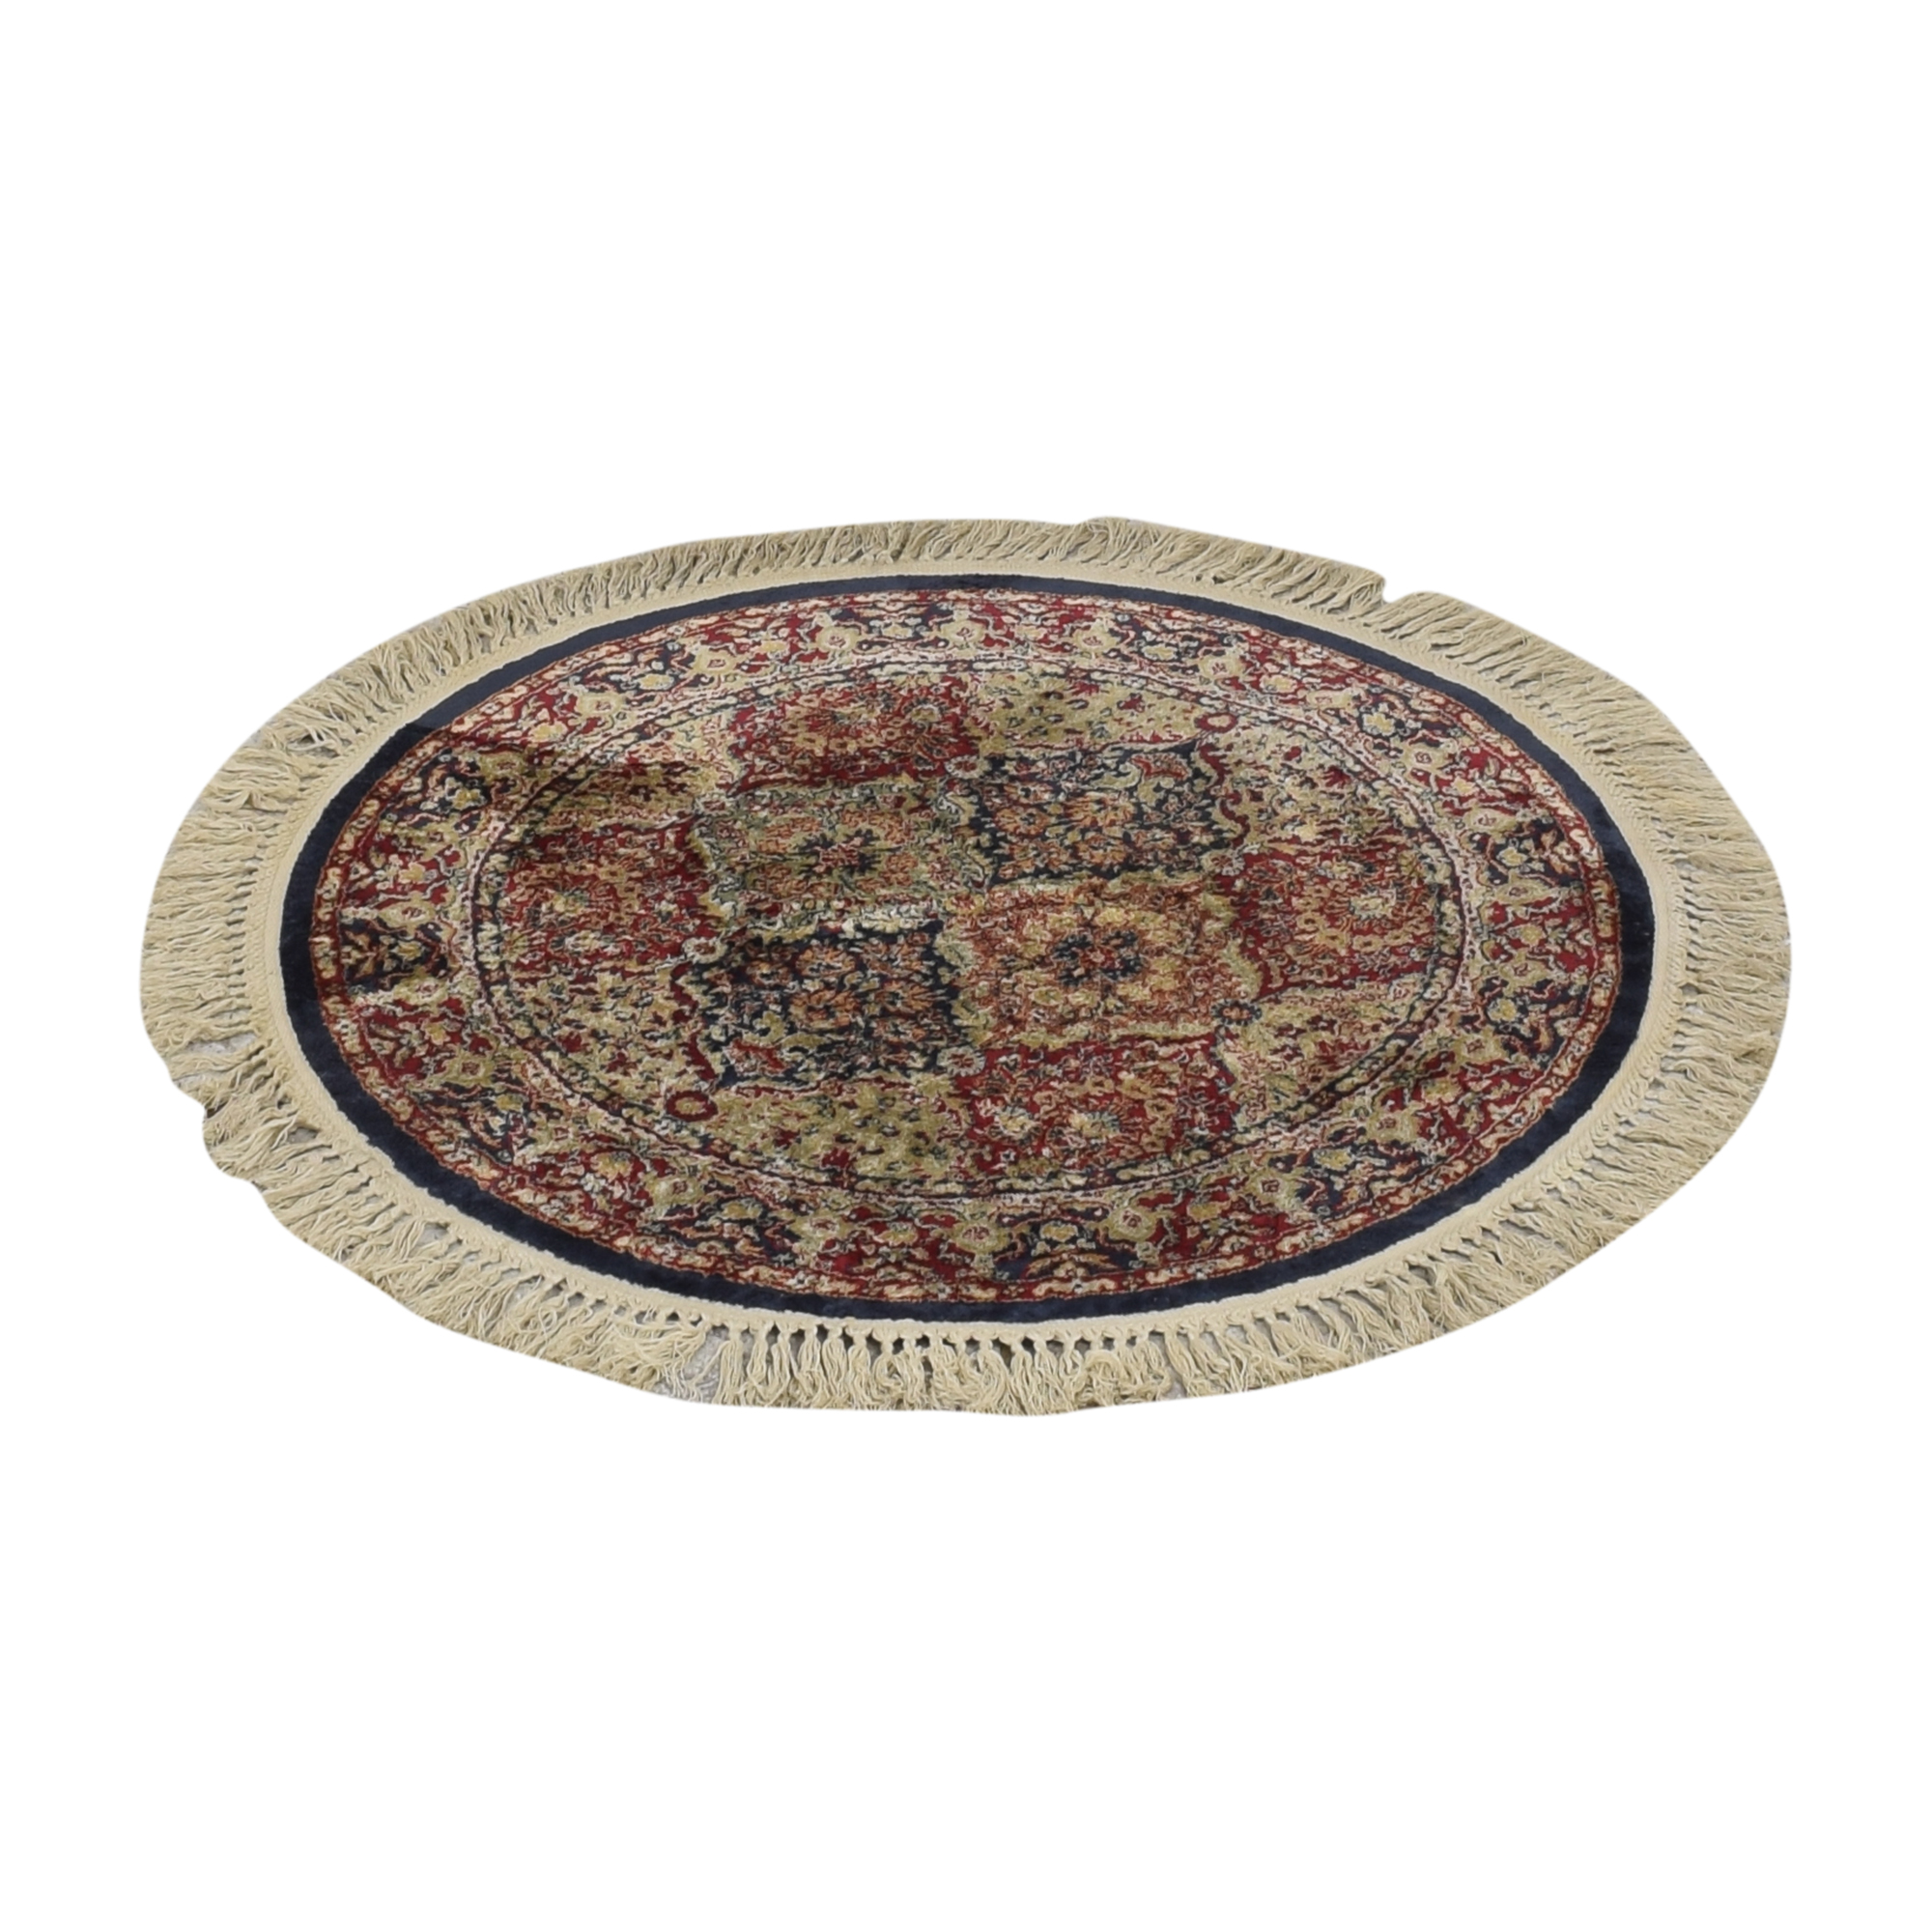 Tasseled Round Rug ct